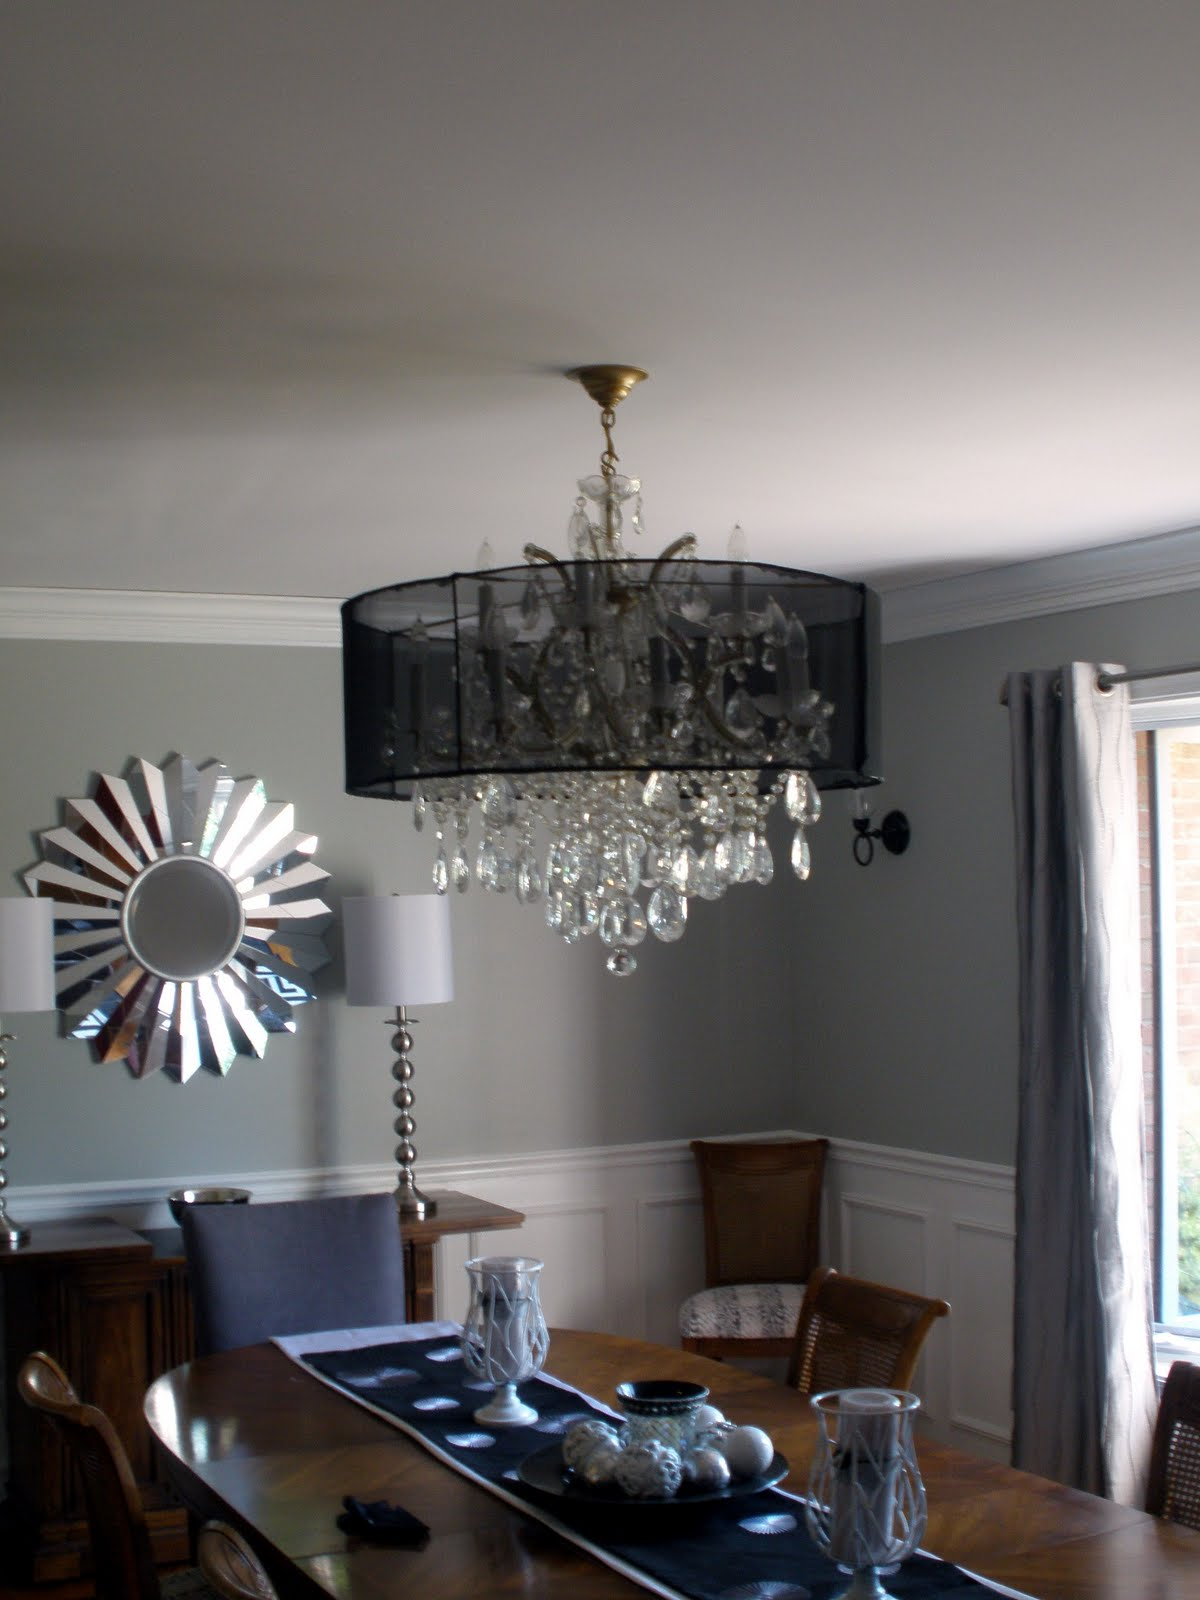 Livinginthe513 chandelier revamp part 2 since we were having a party this past weekend i wanted to get it up in the dining room i used a hot glue gun to attach the fabric mozeypictures Images